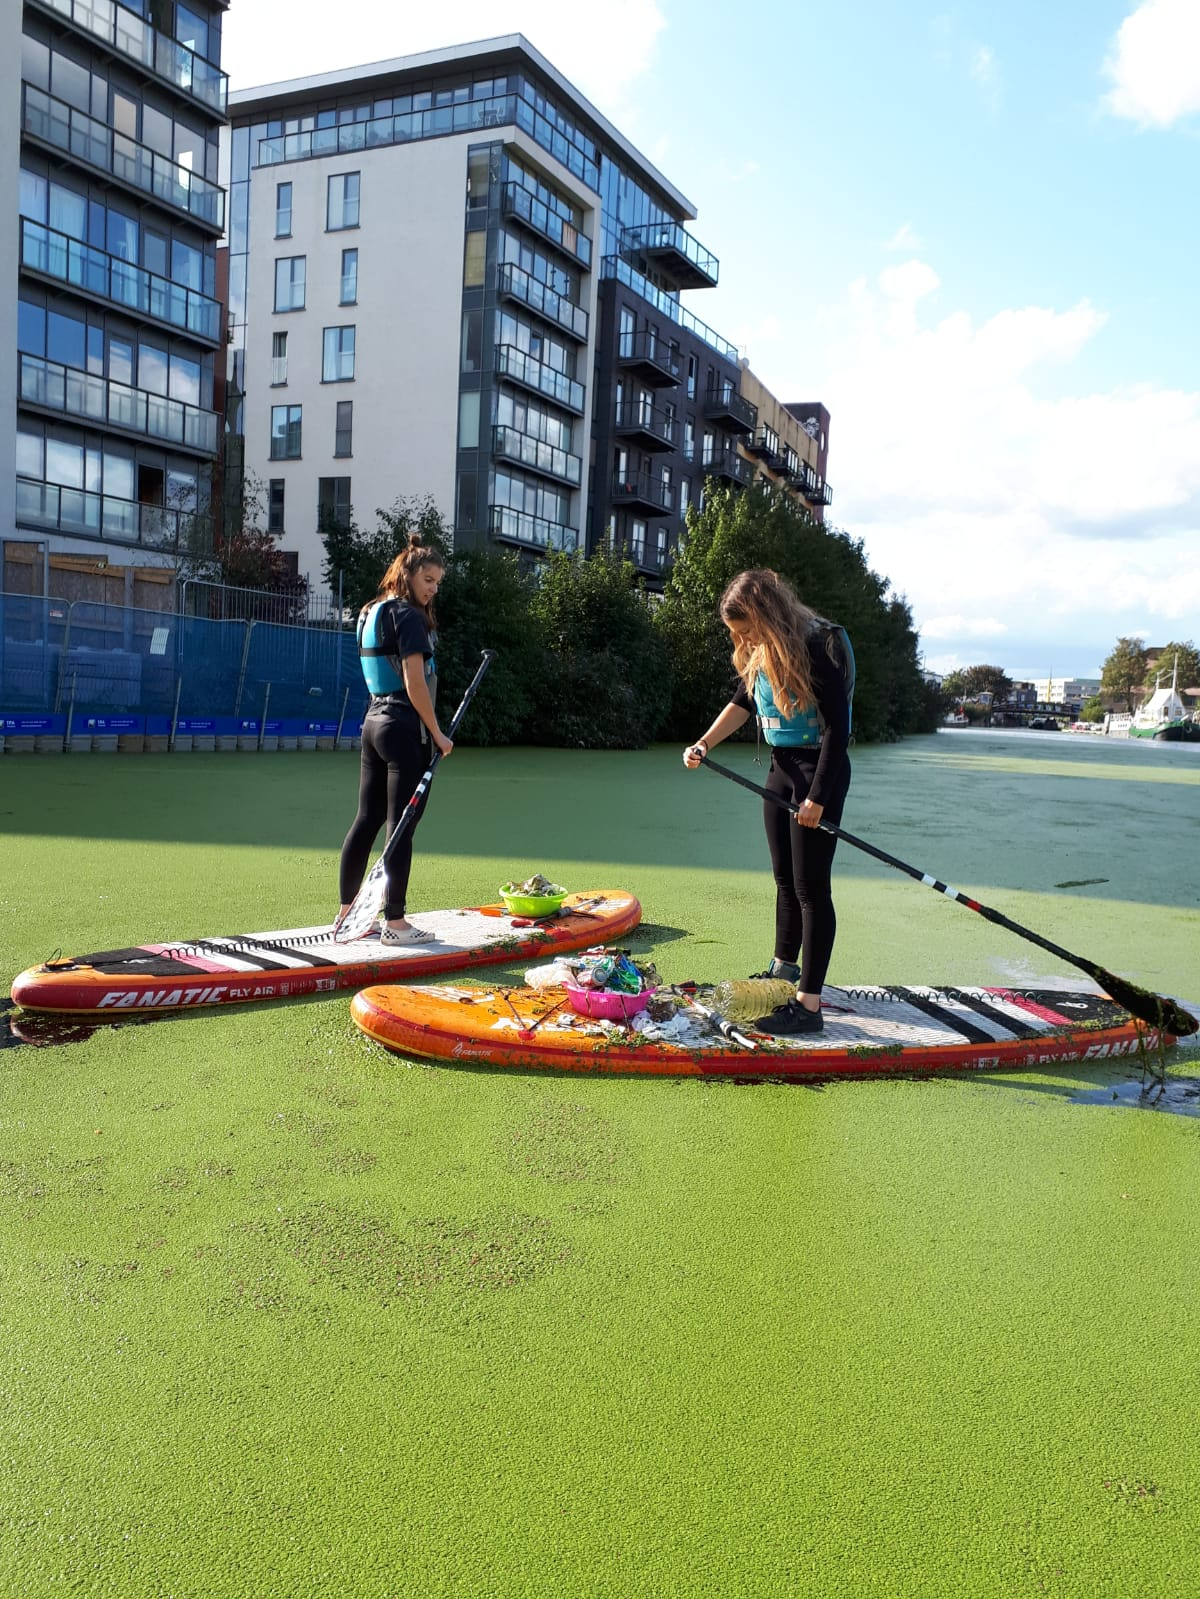 Canal litter clean-up in east London | Surfdome Blog